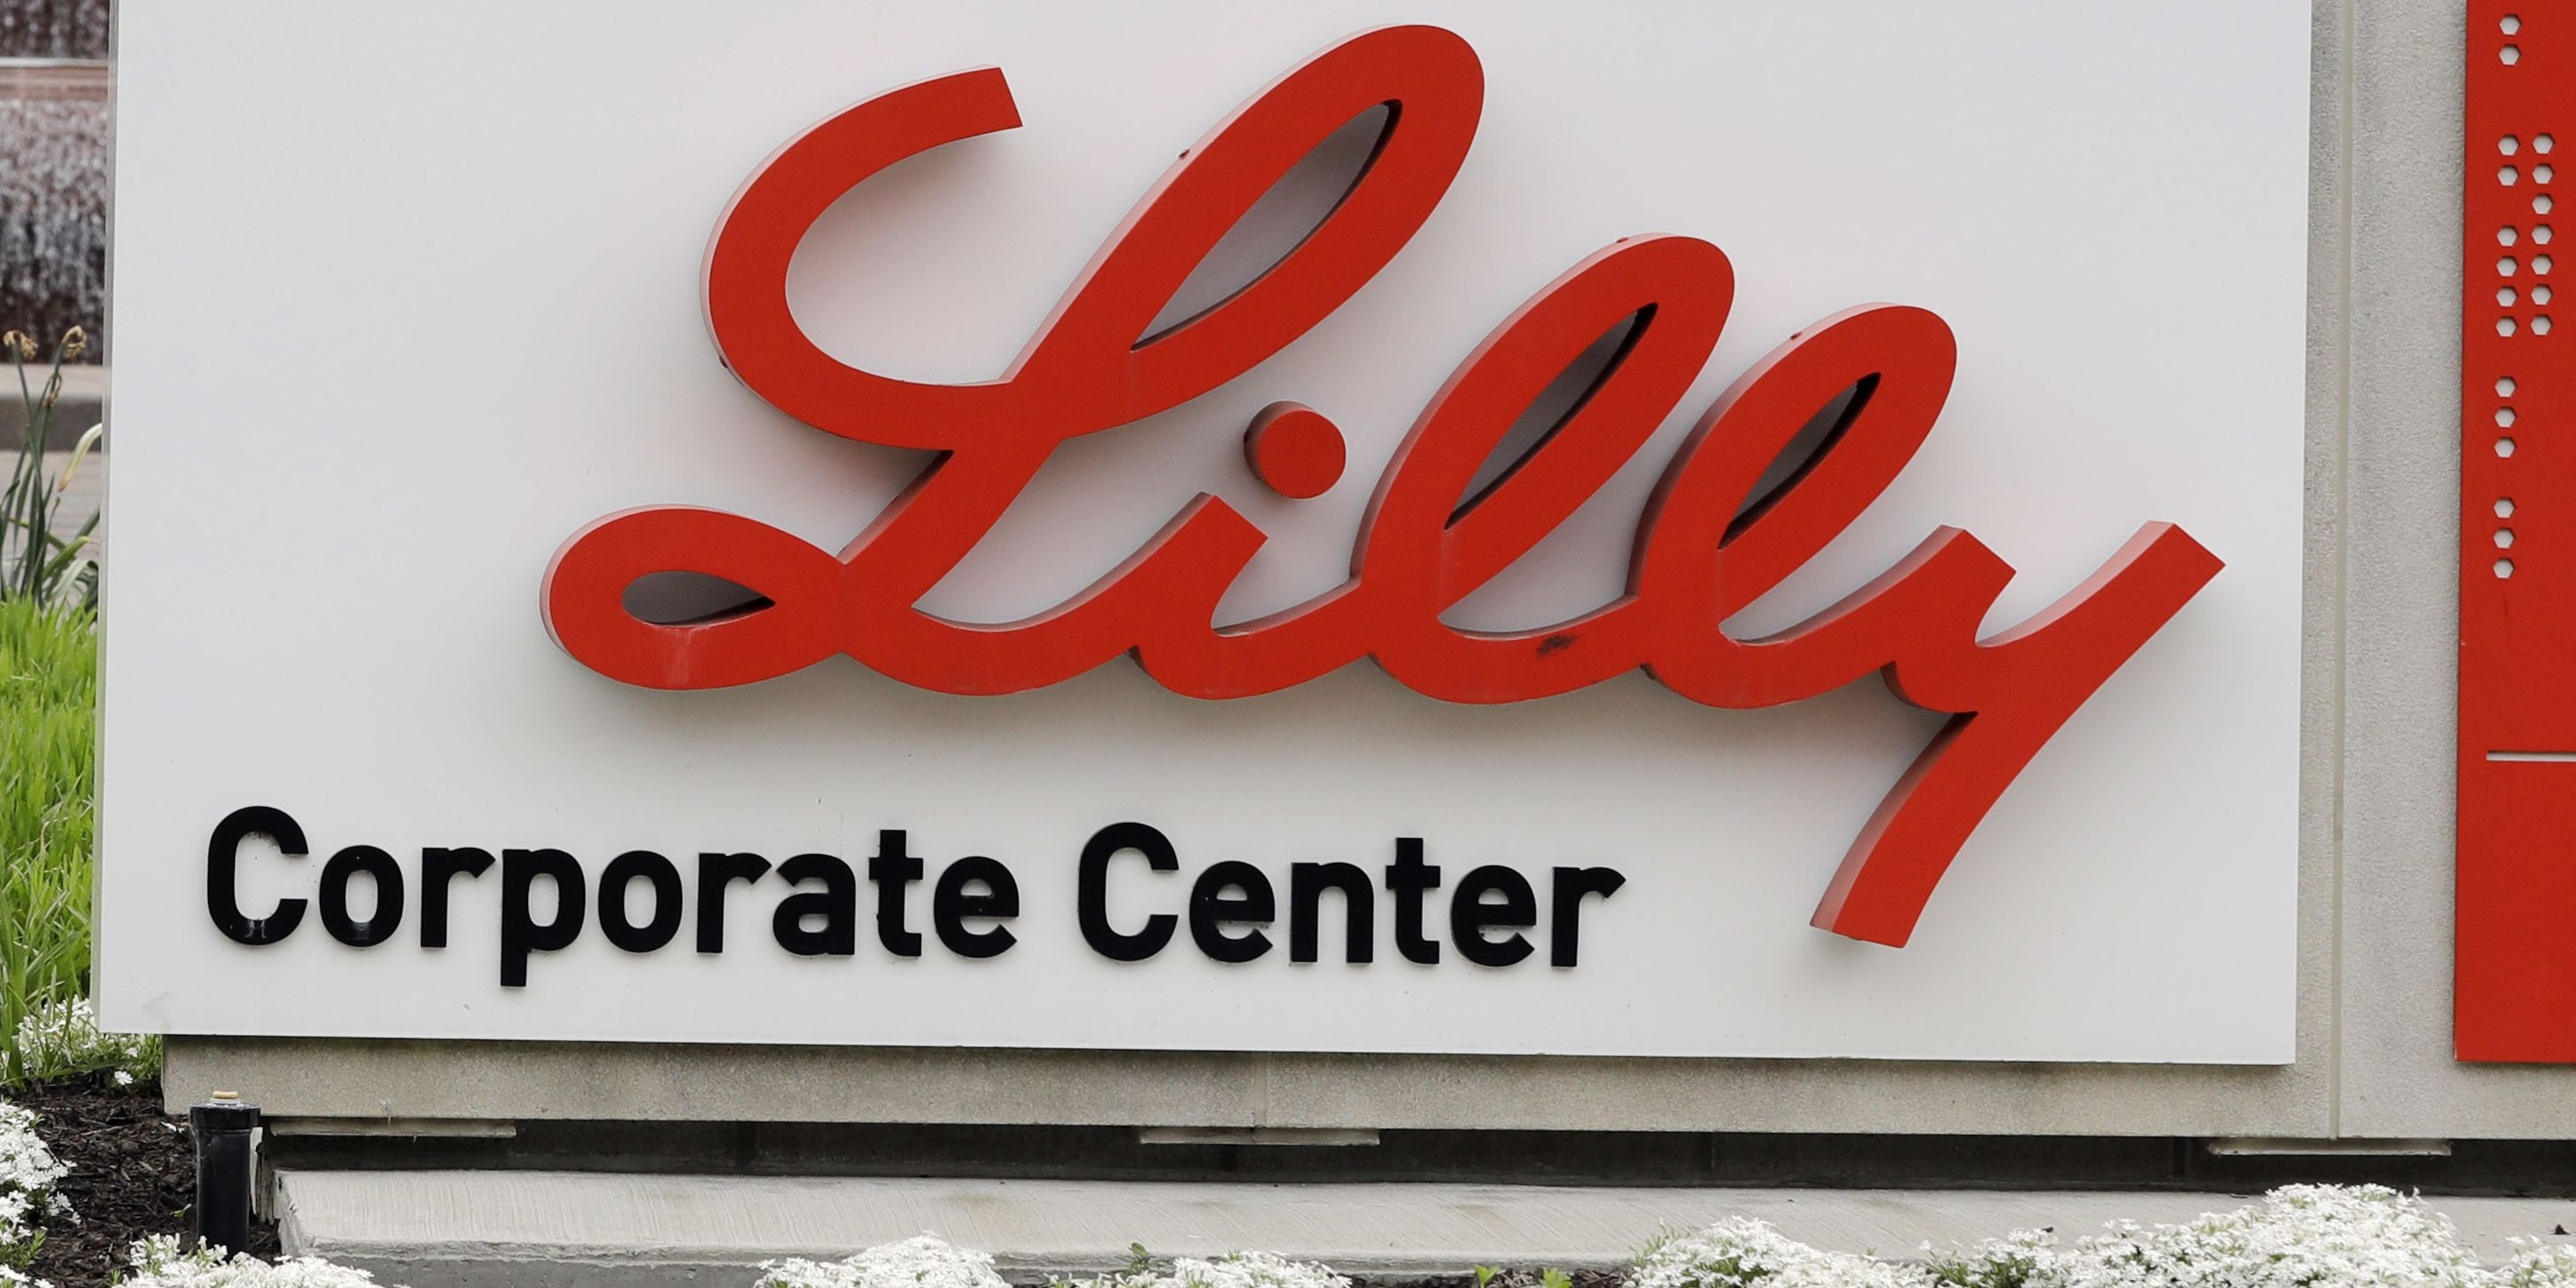 Lilly to sell cheaper version of top-selling insulin Humalog